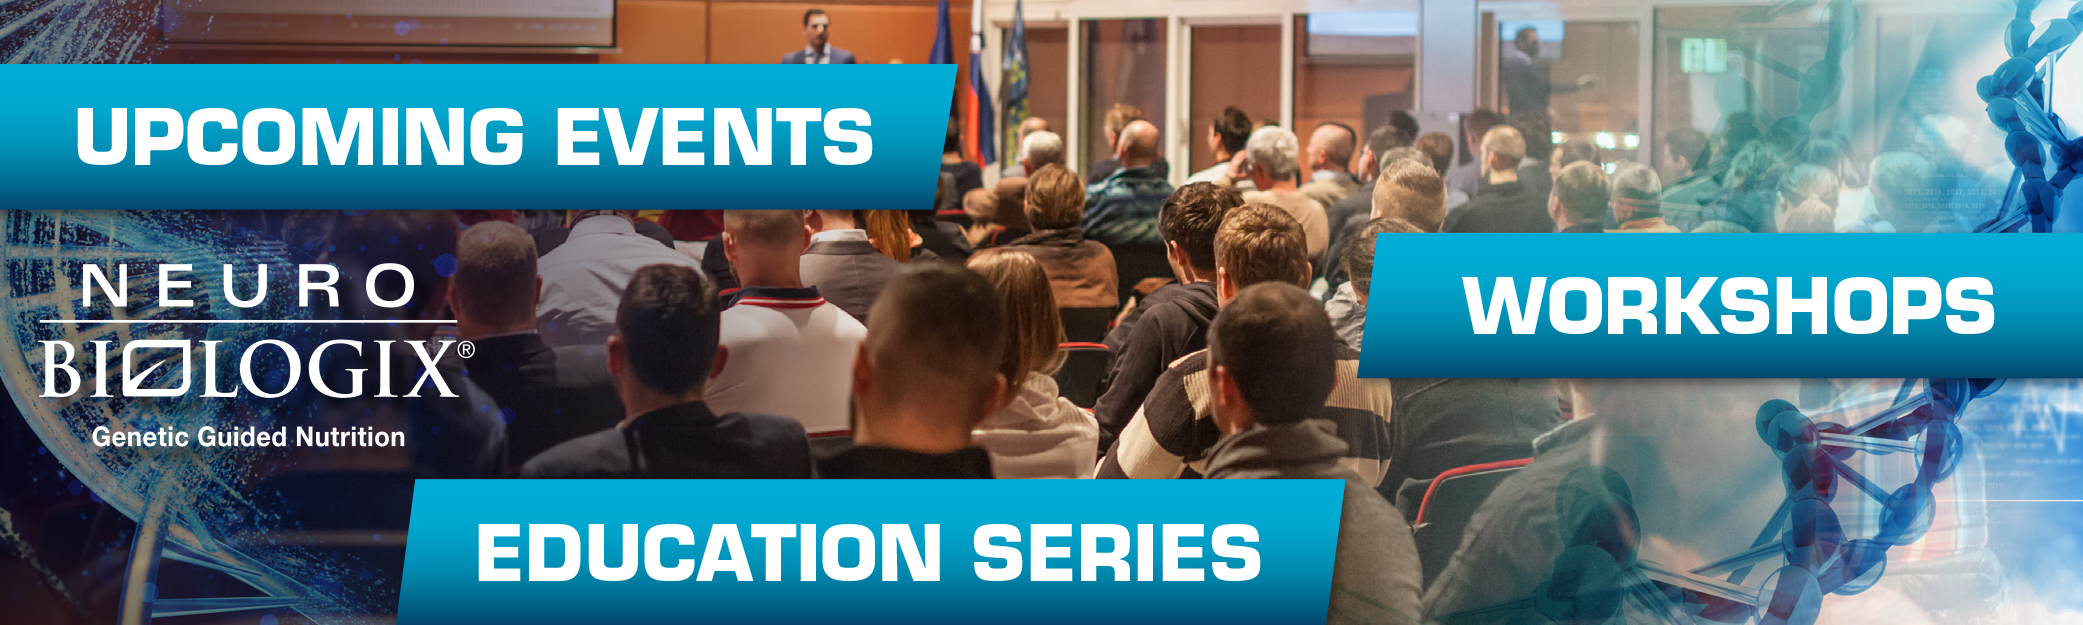 UPCOMING EVENTS, WORKSHOPS & EDUCATION SERIES